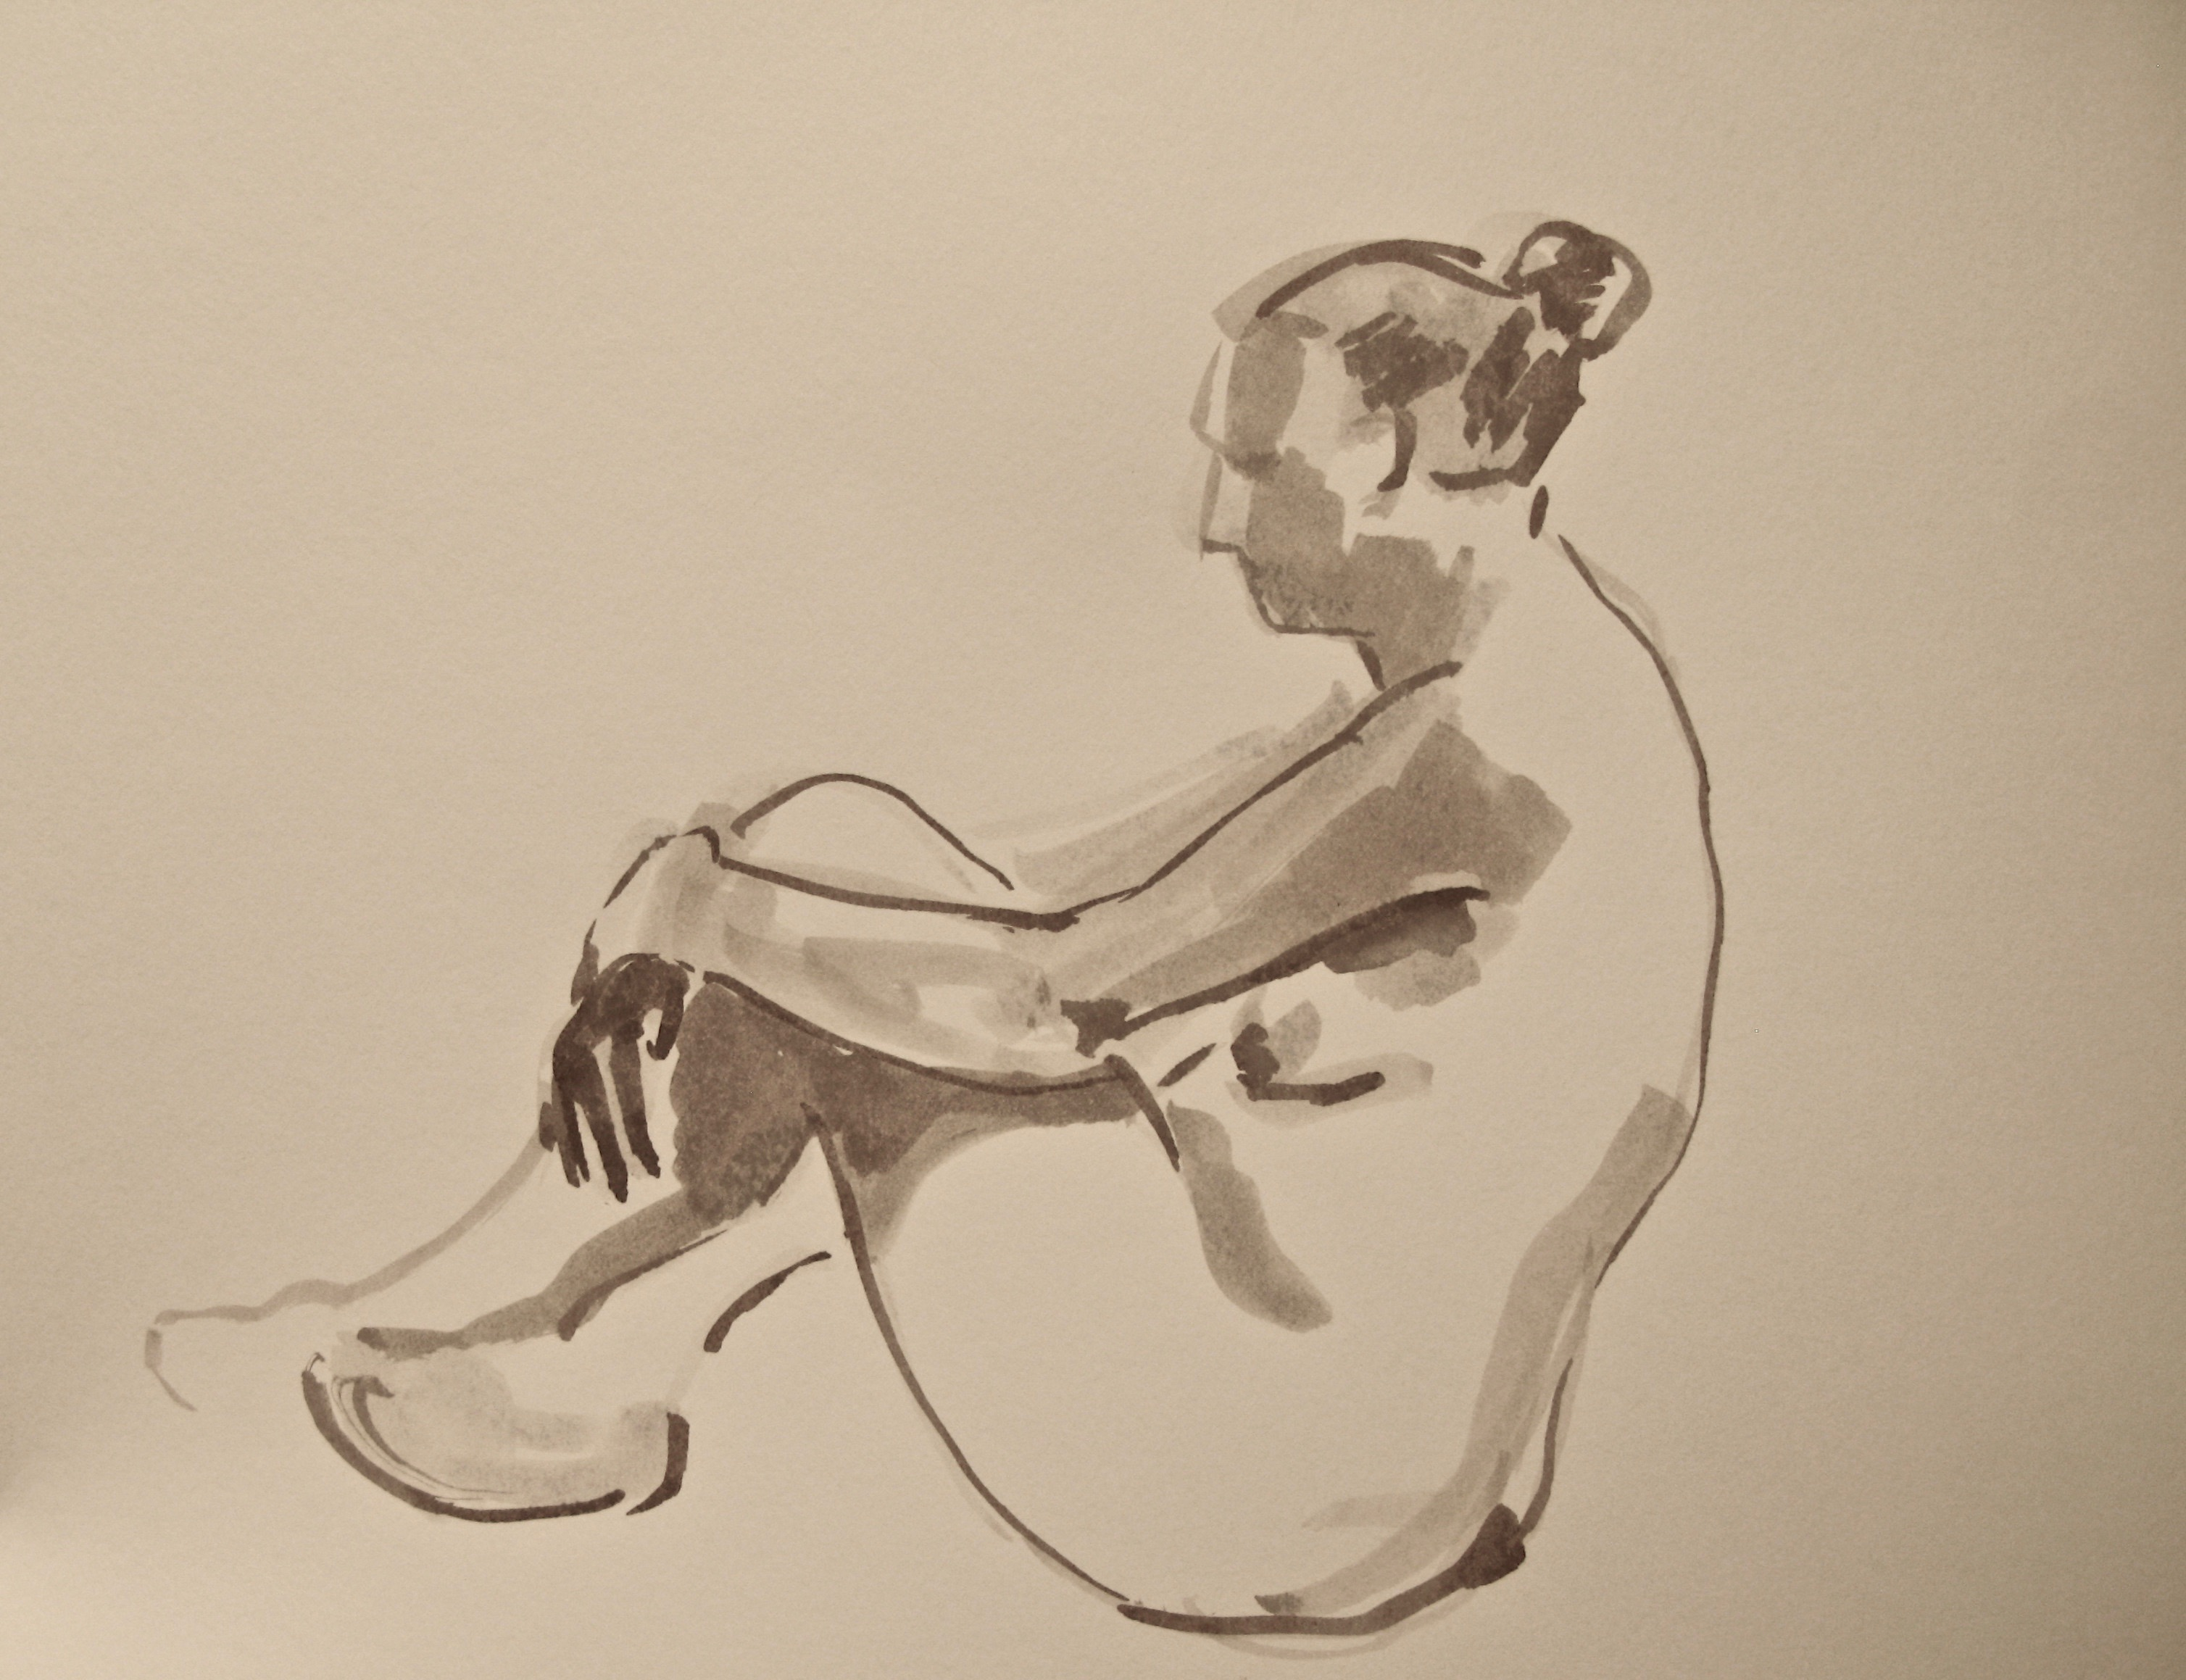 Sitting figure with crossed legs